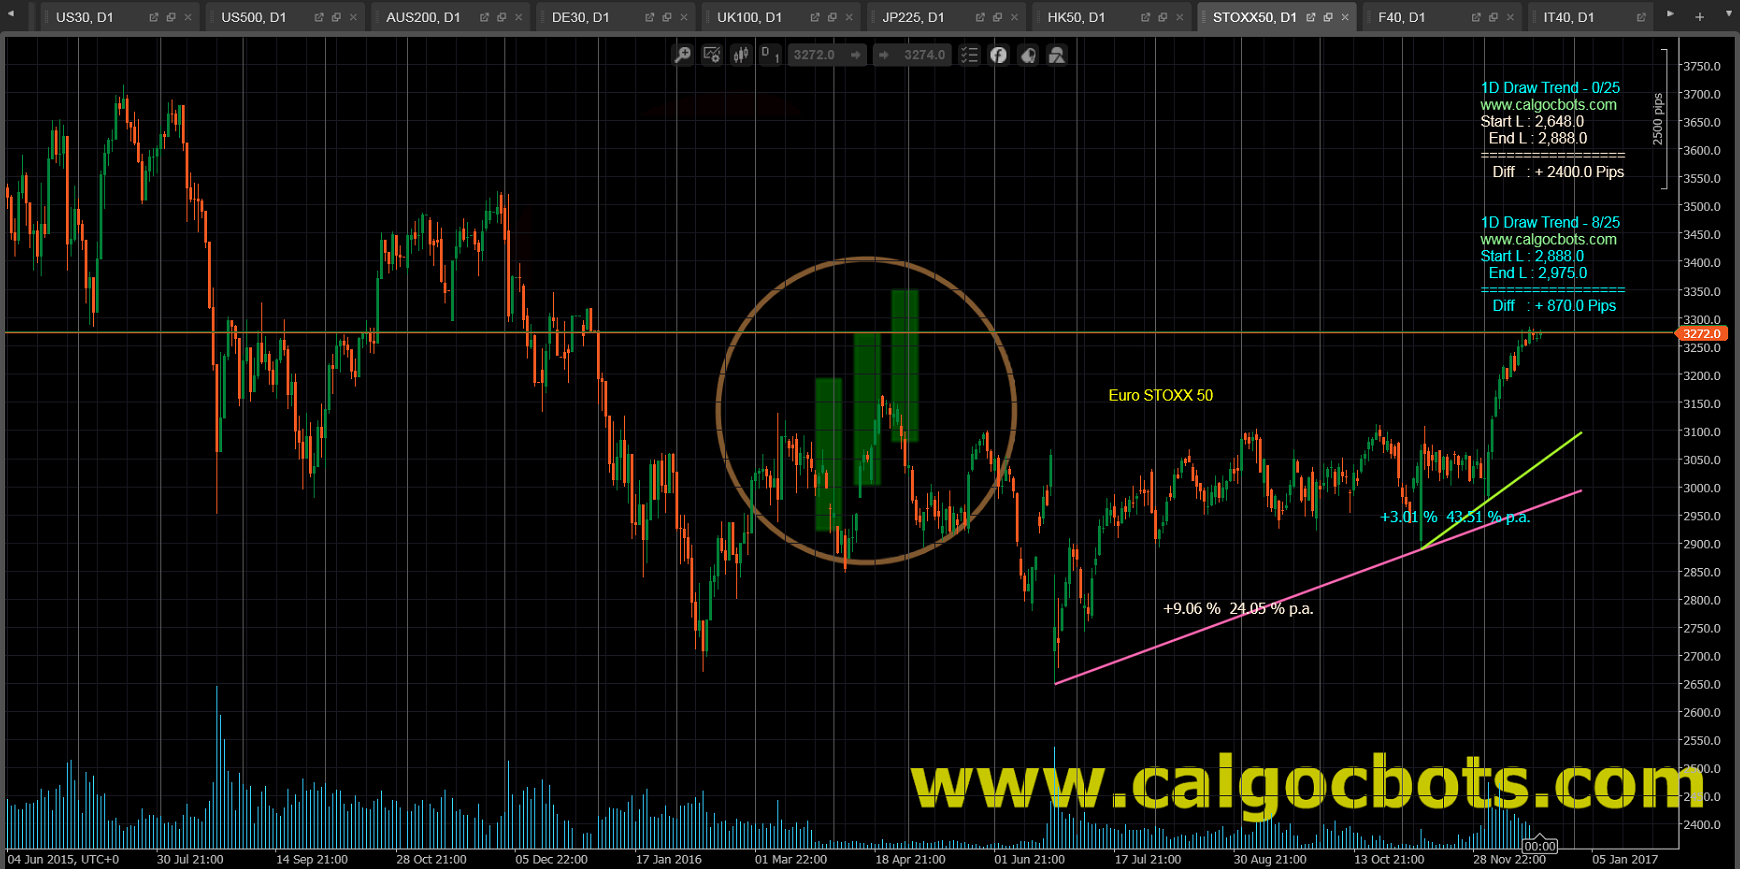 1D Draw Trend - cAlgo and cTrader Indicator - Euro Stoxx 50 Index Europe leading Blue-chip index Daily Chart - 003